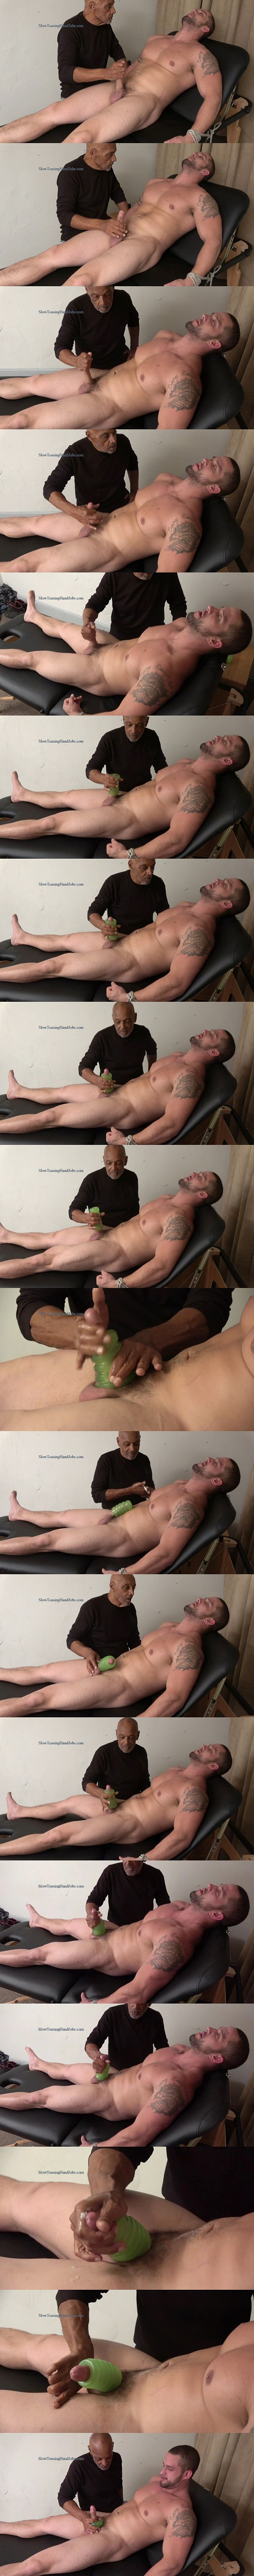 Masculine straight boxer, muscle hunk Angelo gets tied up naked, slowly teased and wanked by master Chic in Edged with a Pocket Pussy at Slowteasinghandjobs 02